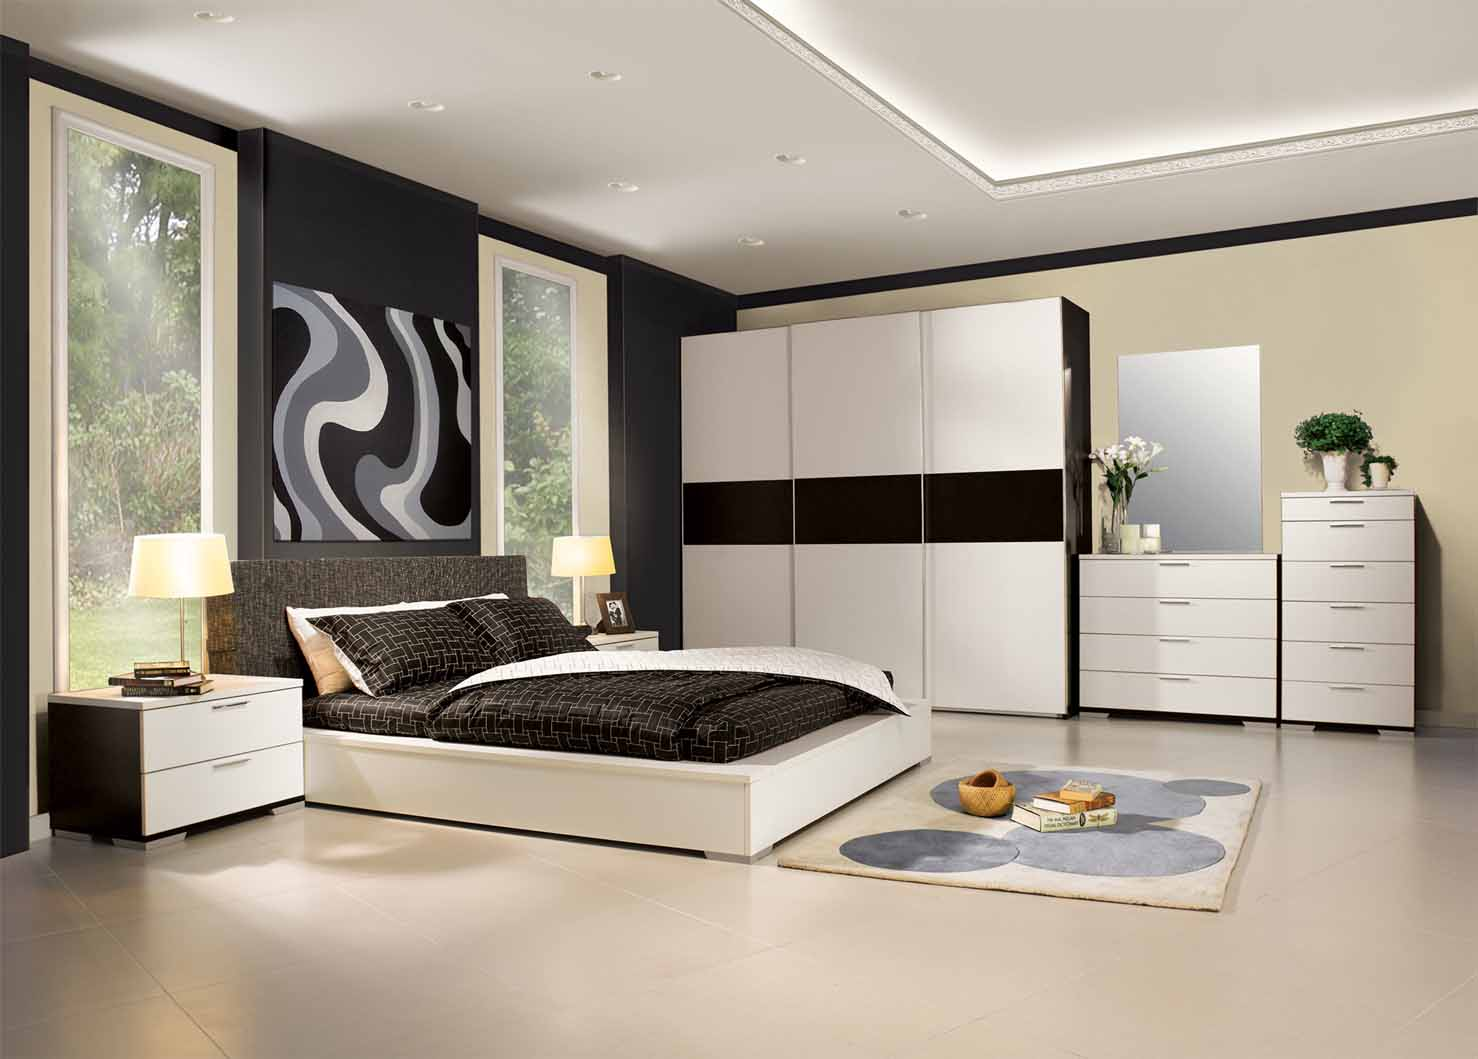 25 Best Bedroom Designs Ideas – The WoW Style